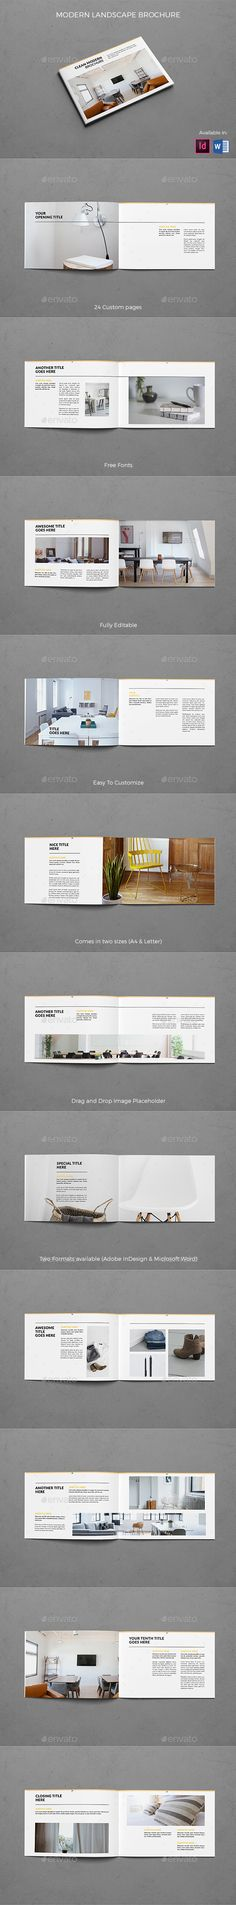 Landscape Clean Modern Brochure Template InDesign INDD